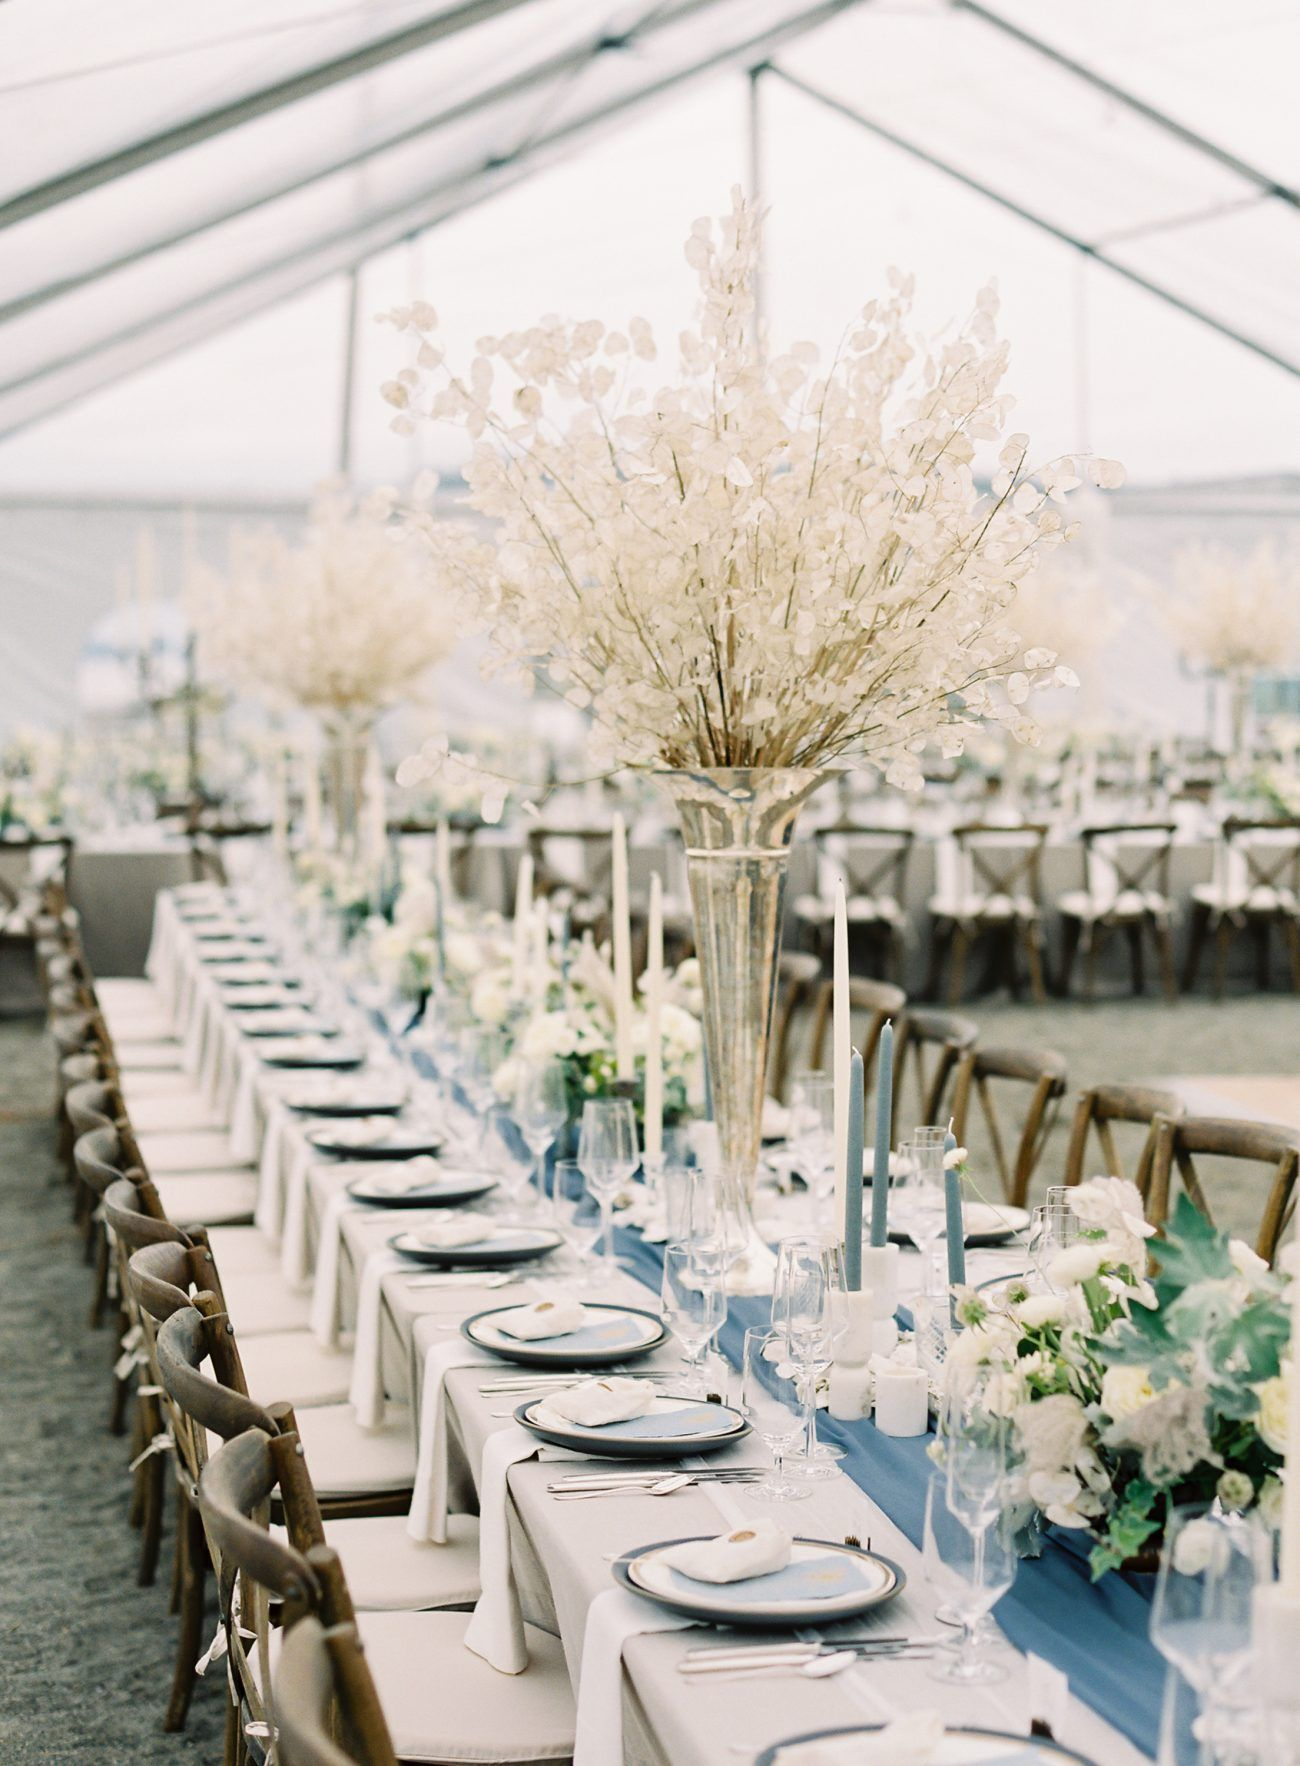 Dan and Kaitlin Say I Do in a Sand and Sea Inspired Coastal Wedding Styled With Shades of Blue and Fresh Neutrals